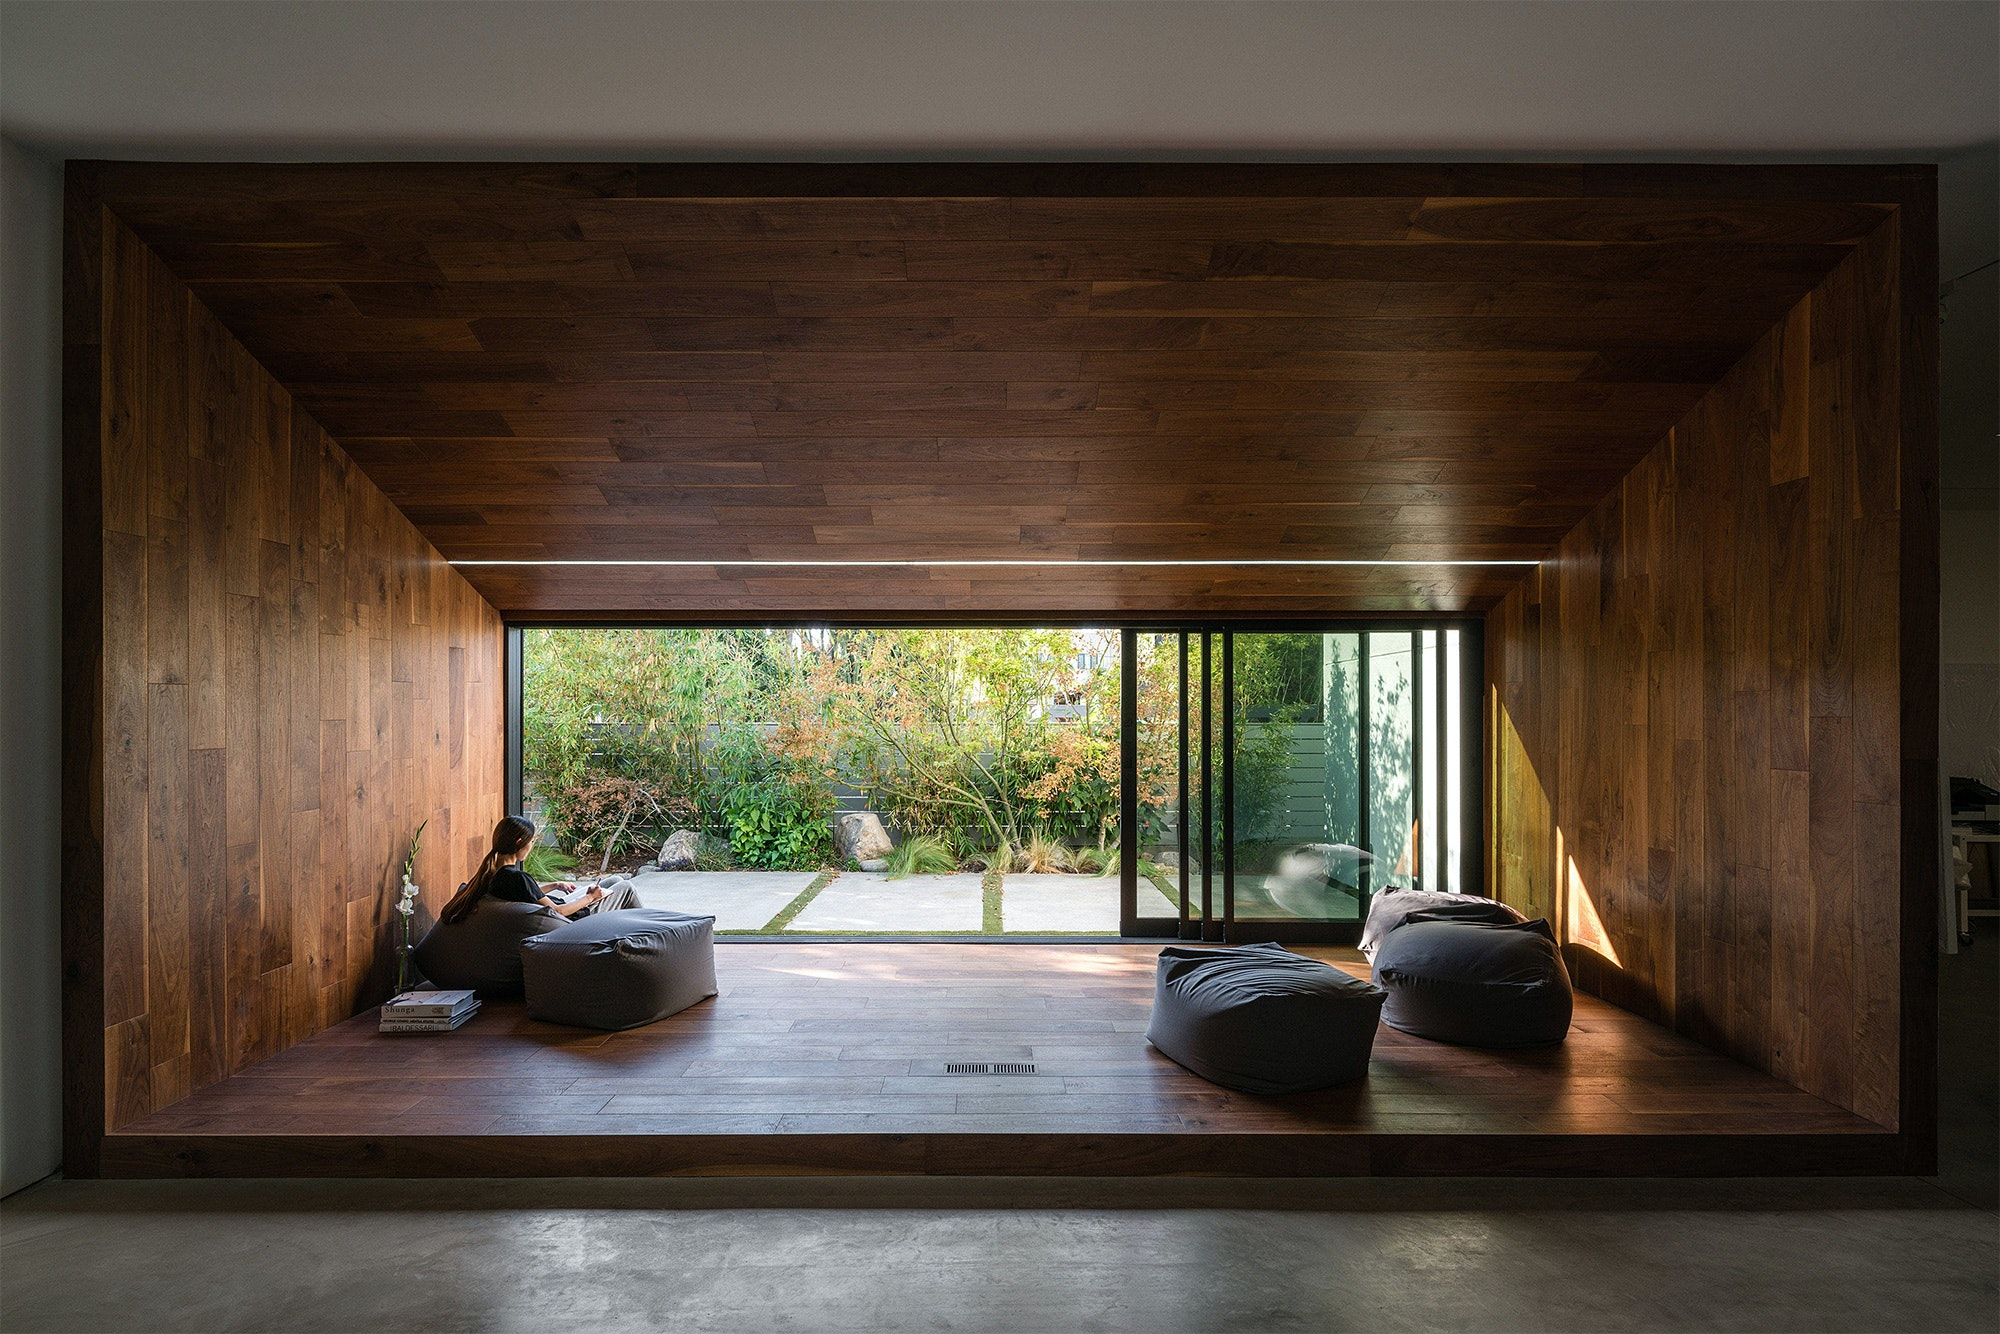 Hide Out House in Los Angeles CA by Dan Brunn Architecture & Natural beauty: 10 impressive applications of wood in architecture ...